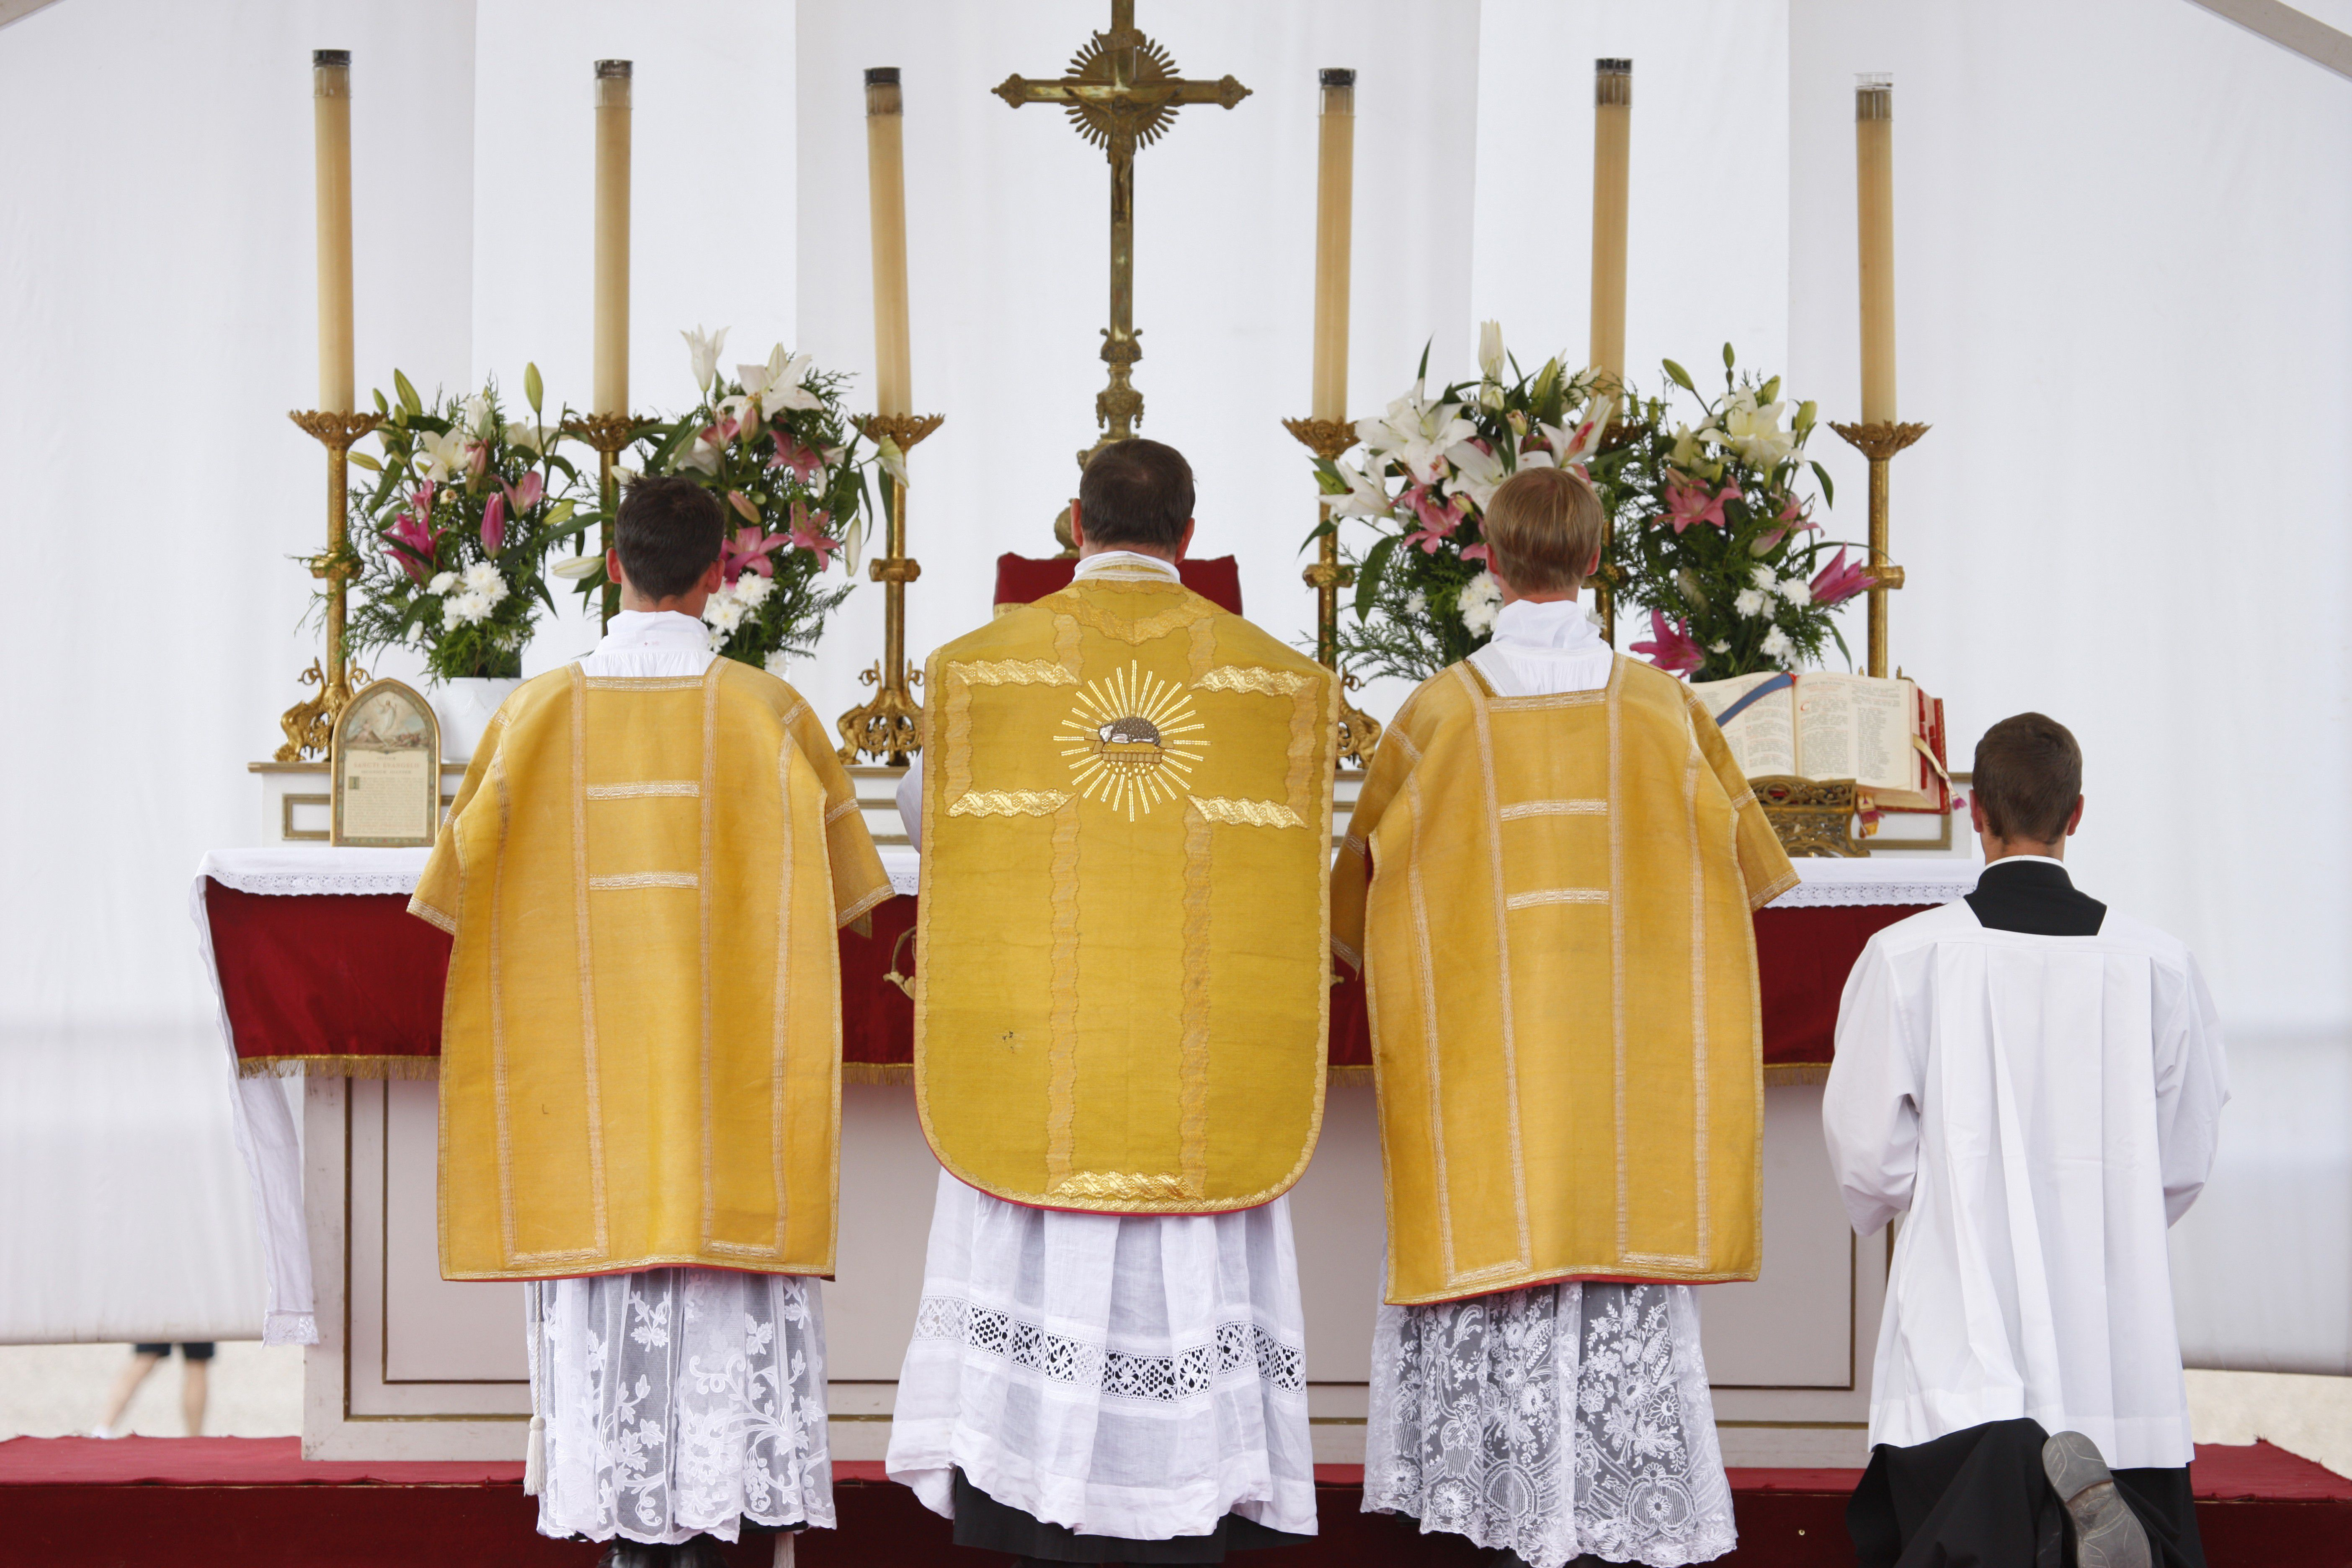 Celebrant and attendants at the altar during a traditional Mass